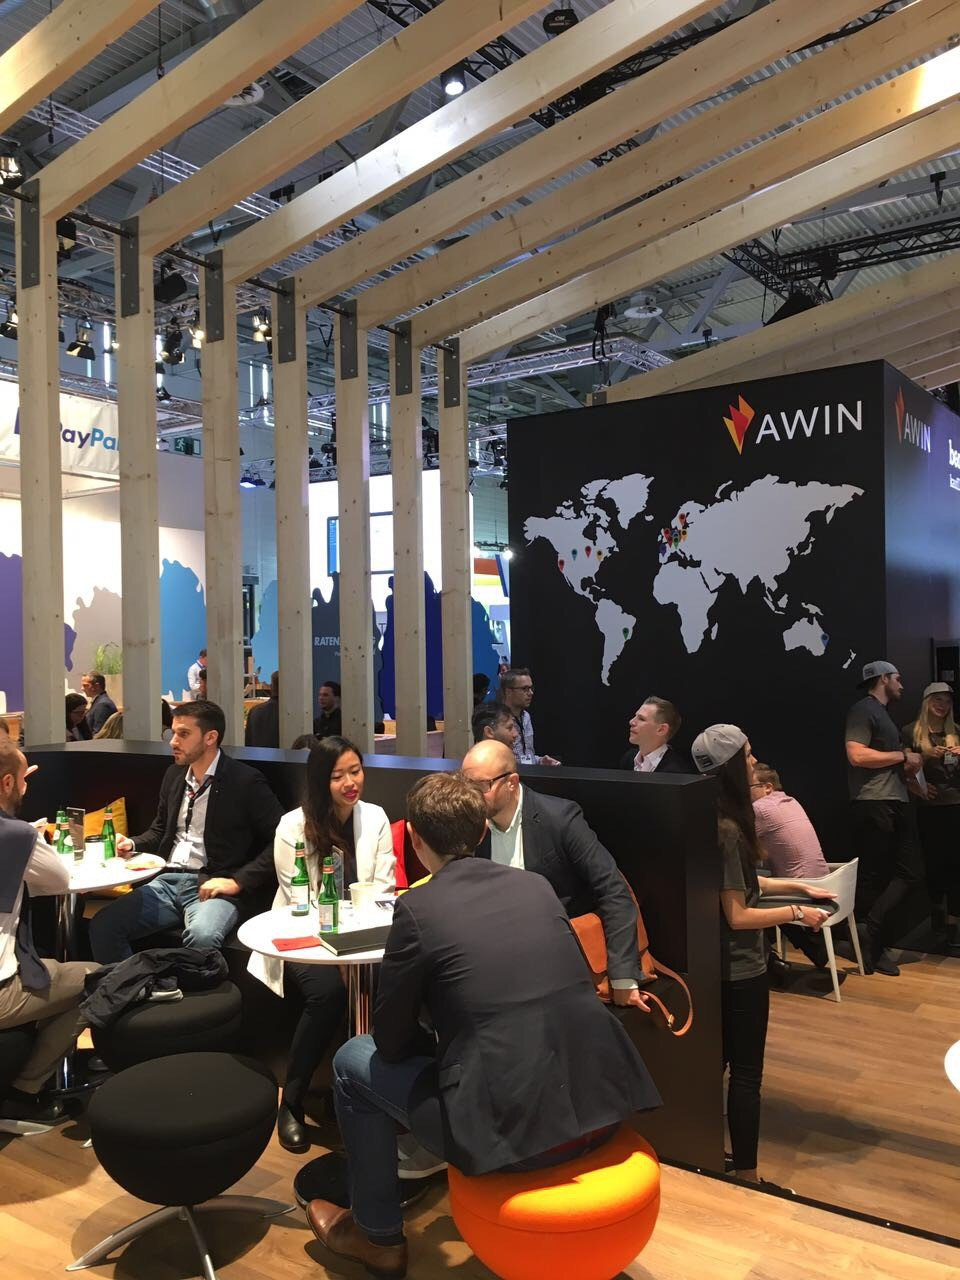 awin-stand-dmexco-2017